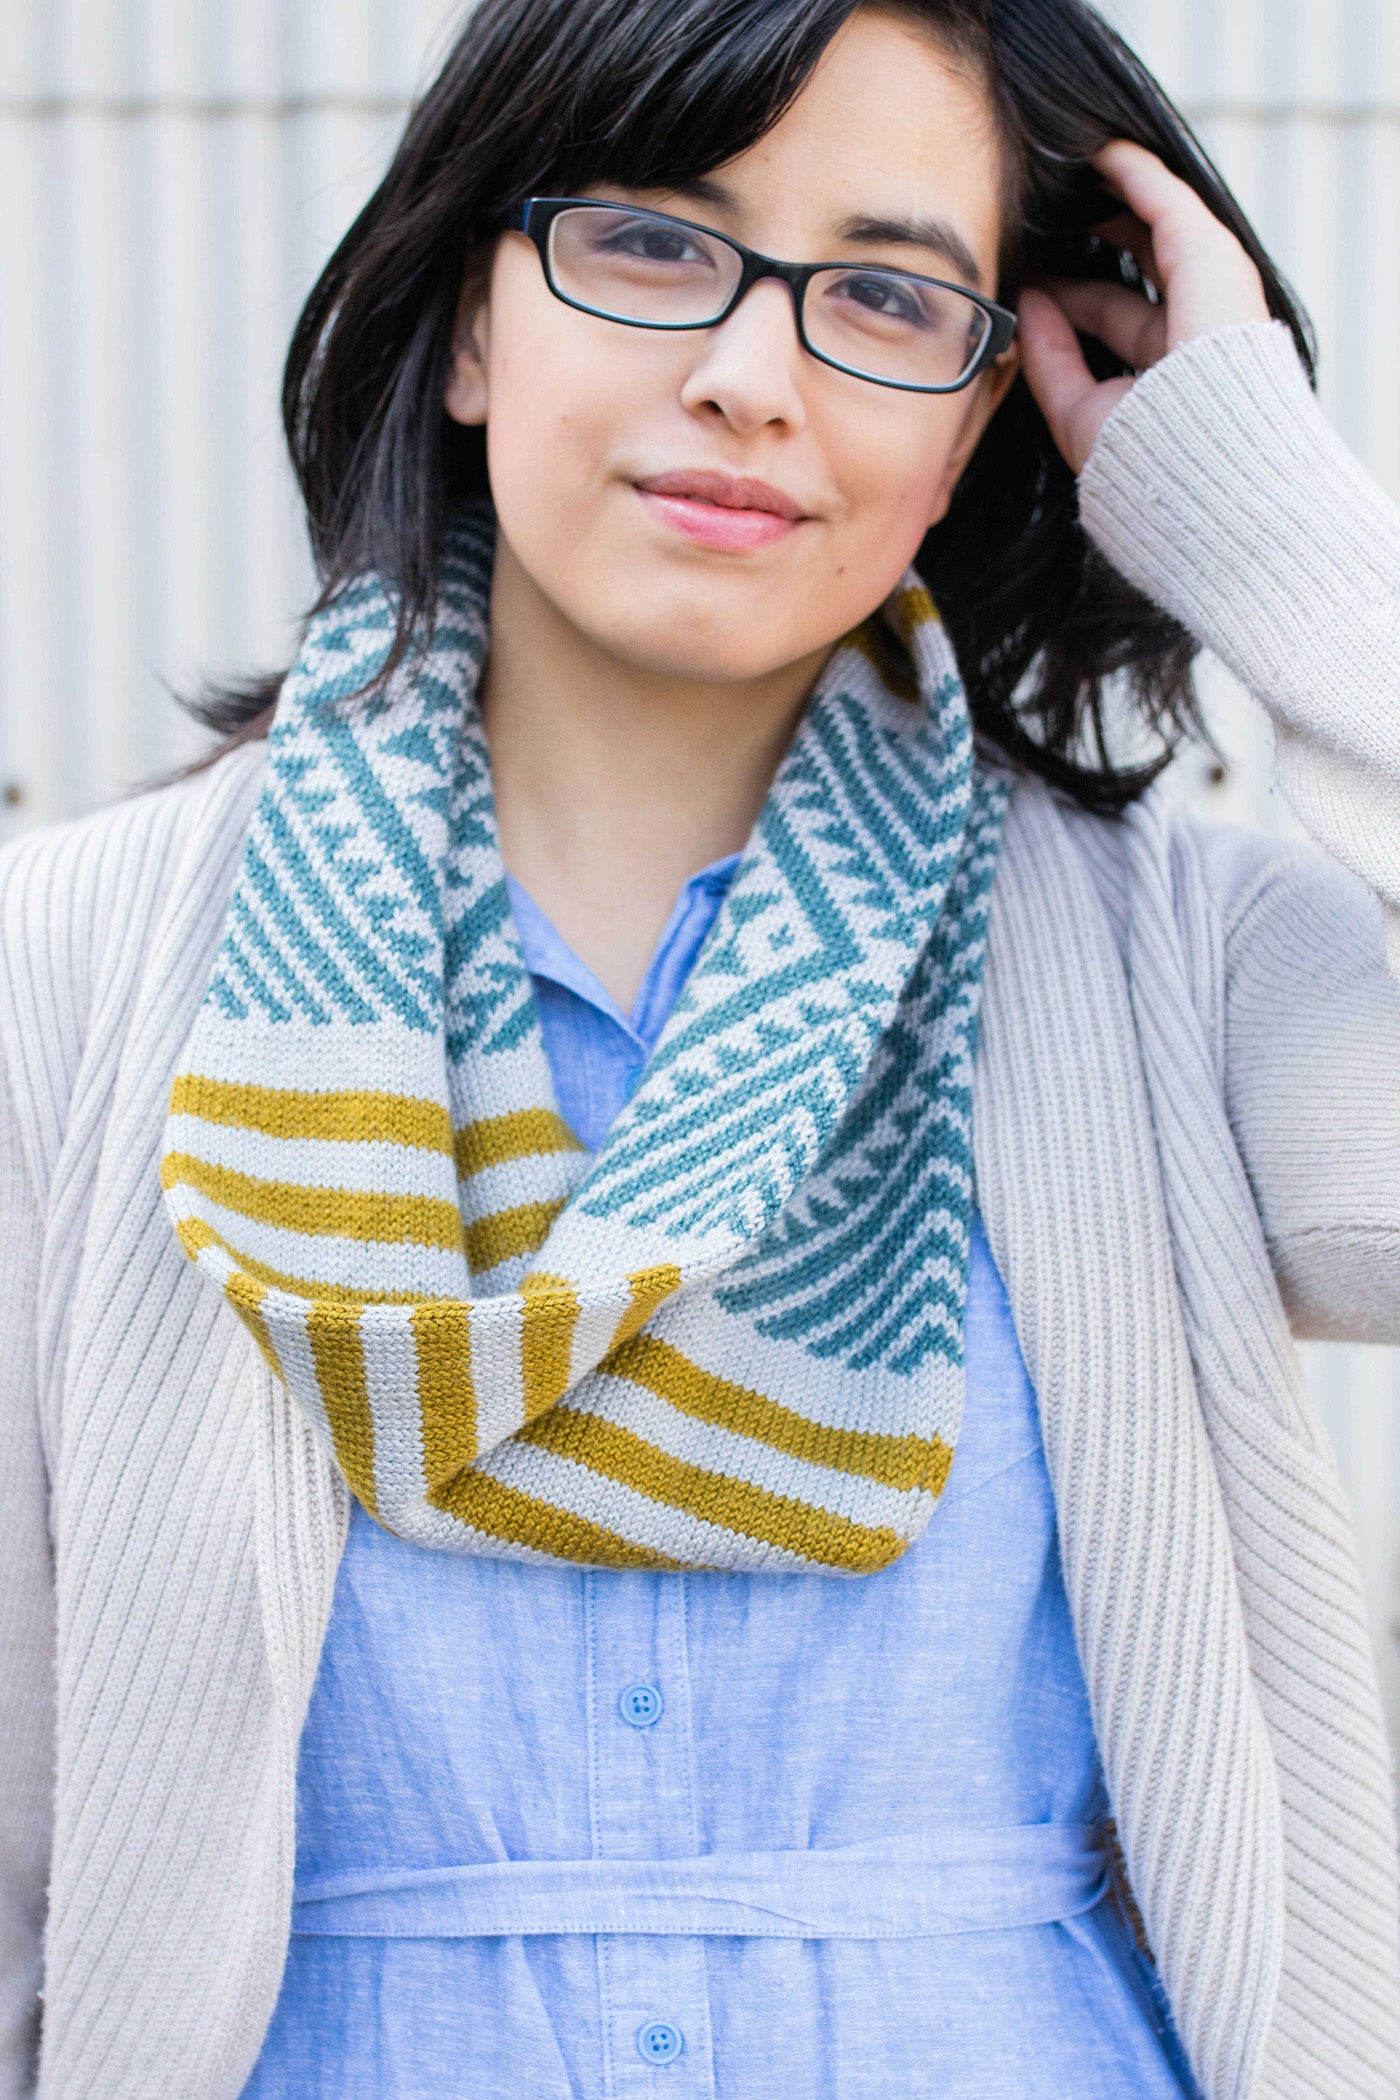 Photograph of a women wearing a light blue top, oatmeal knitted sweater with a colorful scarf in dark yellow and teal.  Women is facing the camera with a slight smile and has her left hand in her hair.